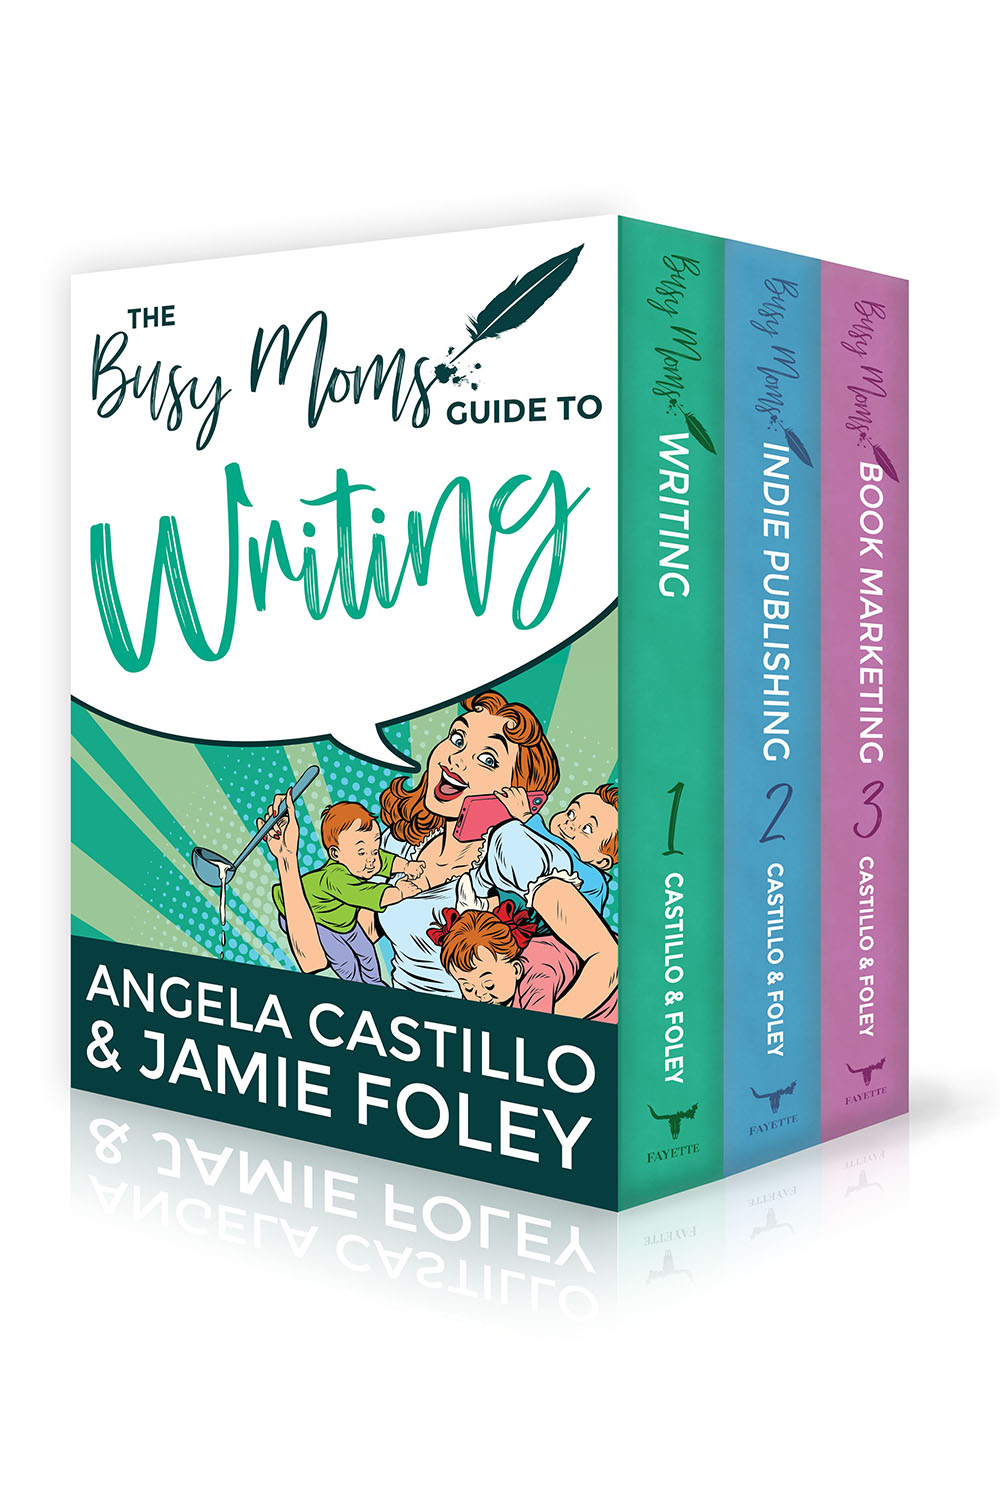 The Busy Mom's Guide to Writing Box Set